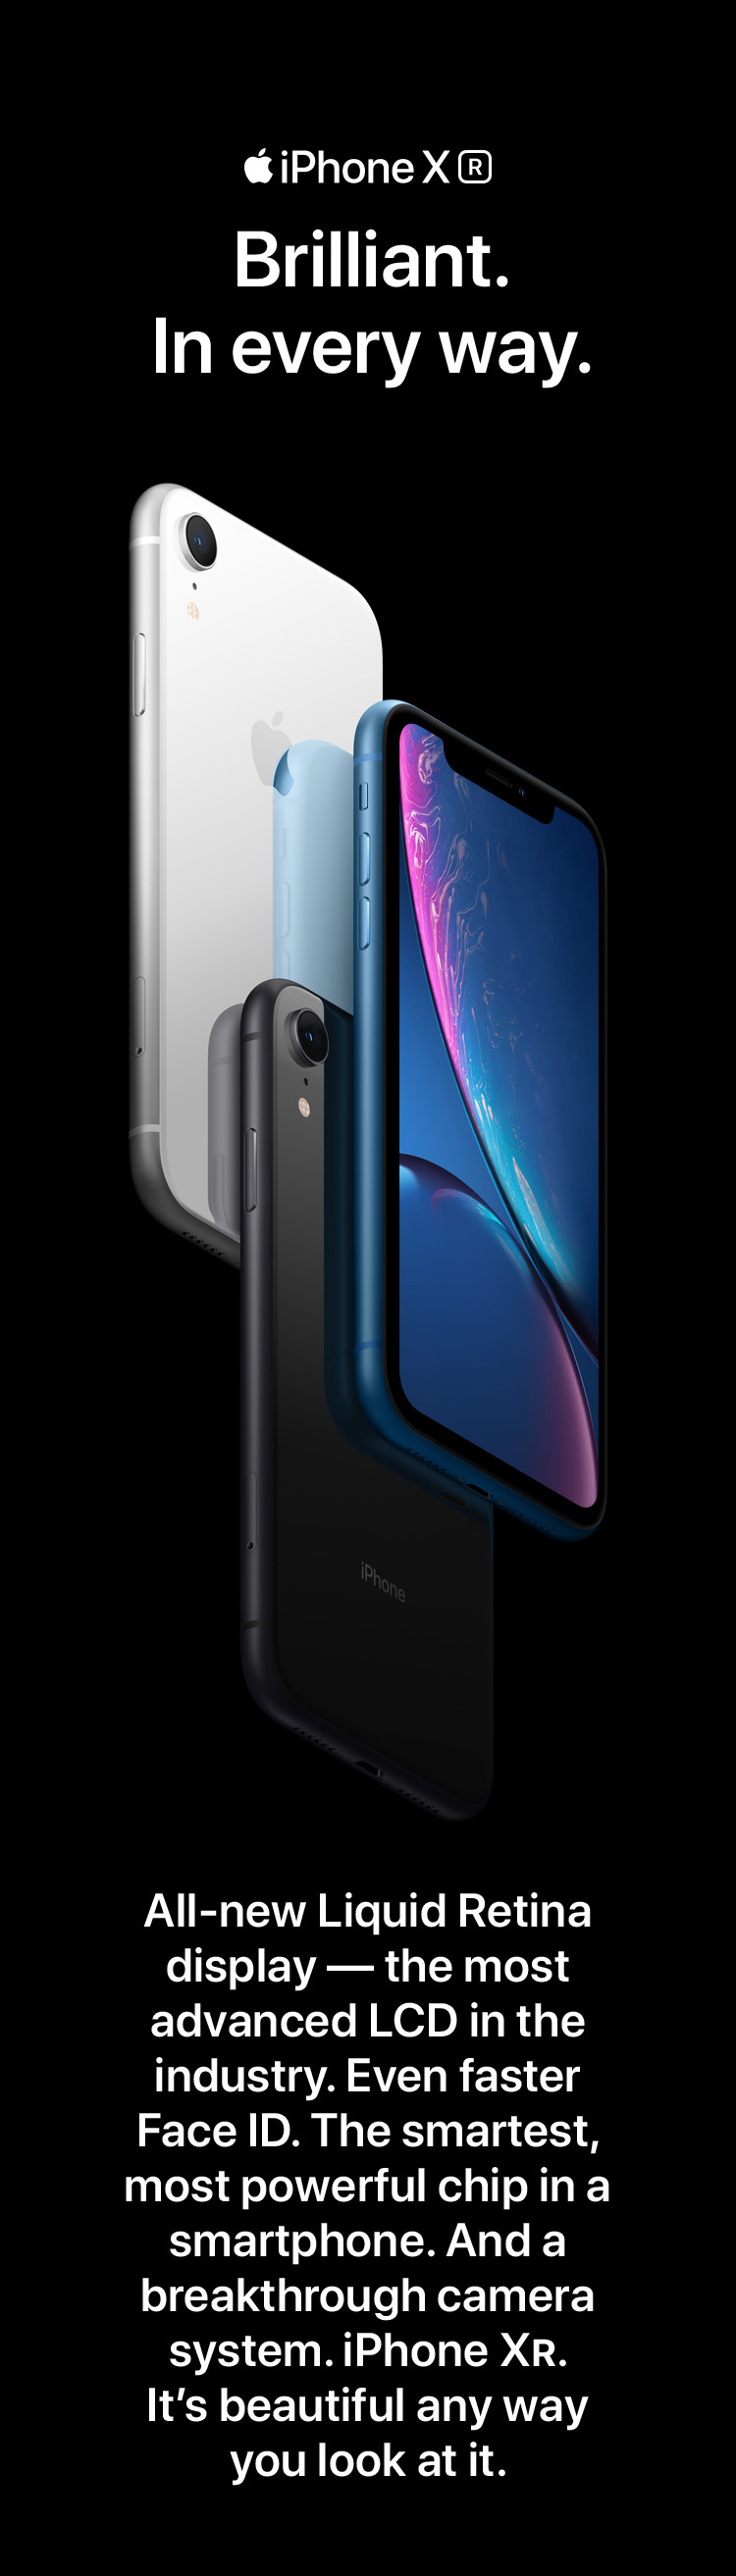 iPhone Xr. Brilliant. In every way. All-new Liquid Retina display - the most advanced LCD in the industry. Ever faster Face ID. The smartest, most powerful chip in a smartphone. And a breakthrough camera system. iPhone Xr. T's beautiful any way you look at it.